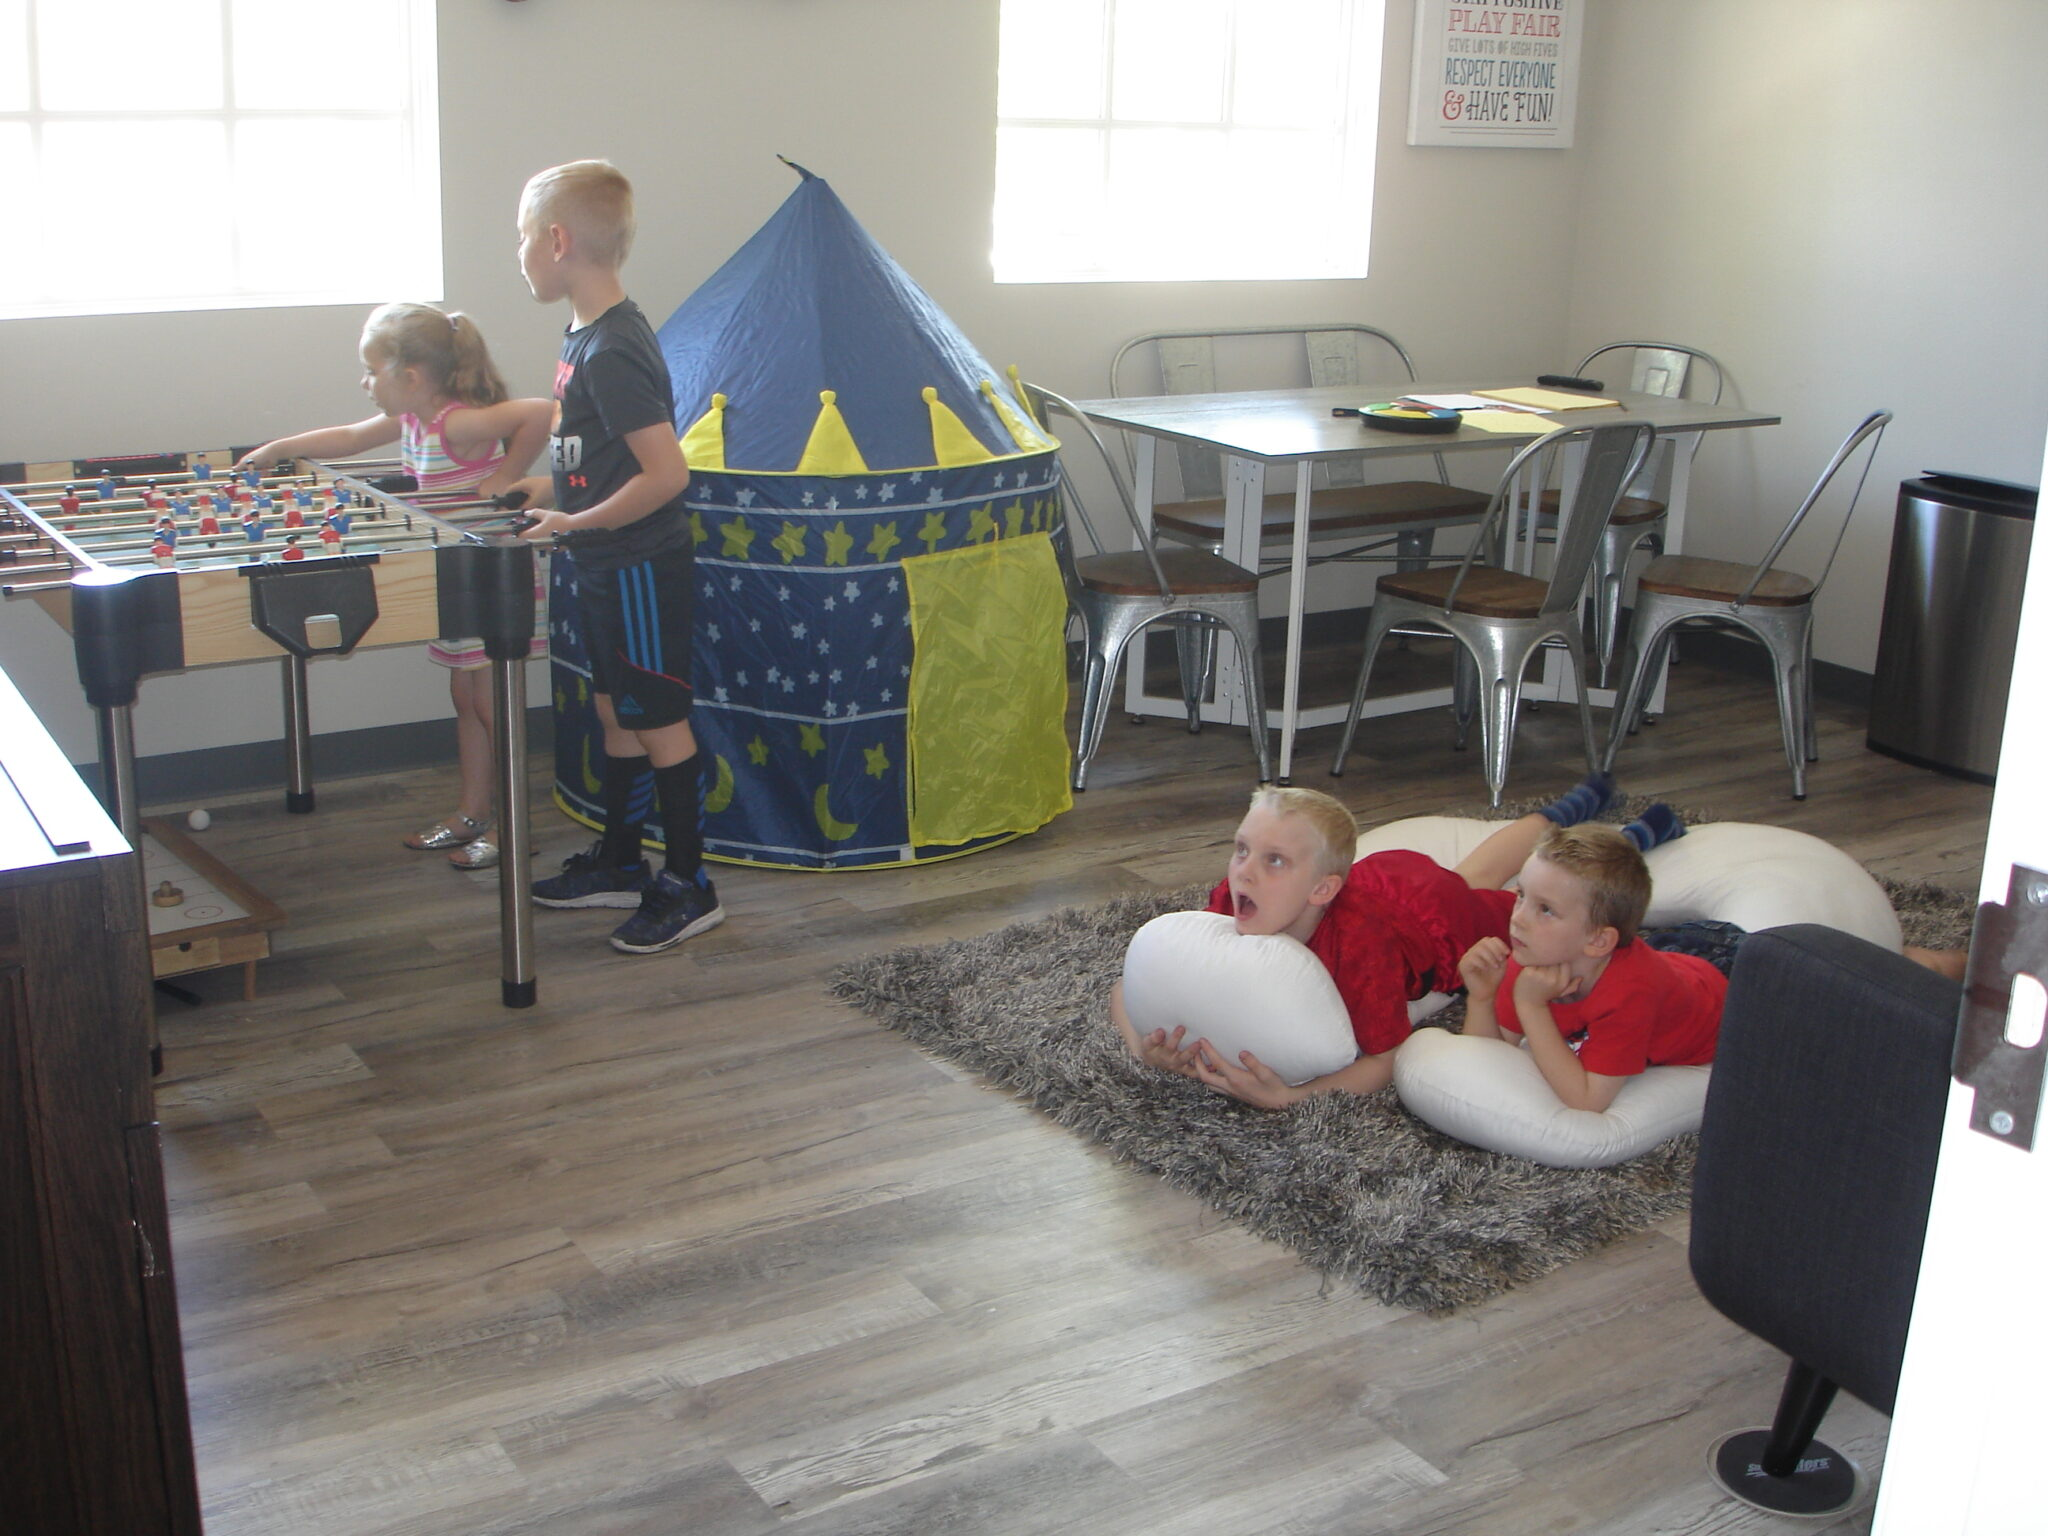 Children playing in Social Lounge